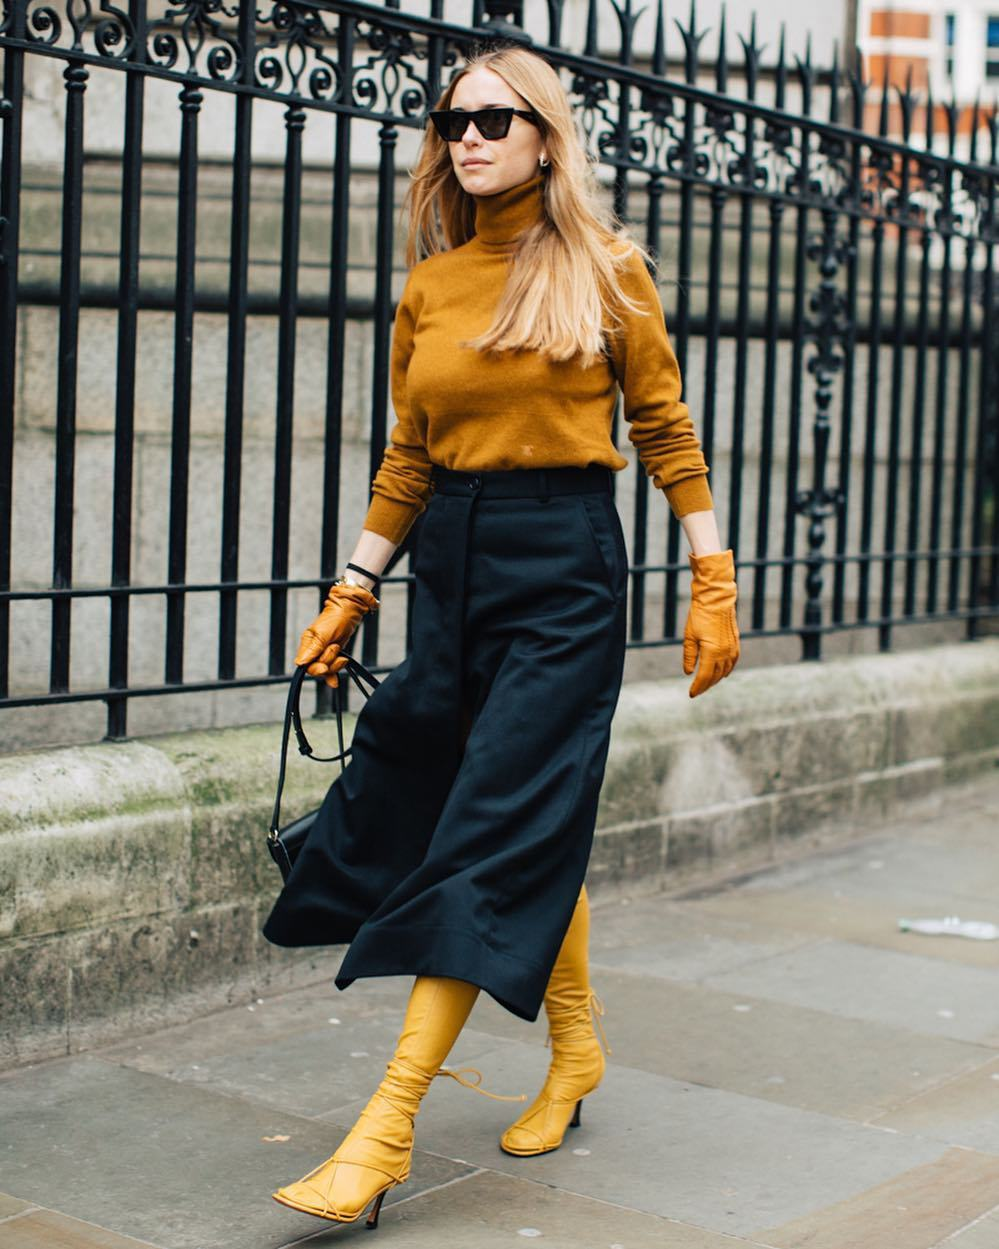 sweater turtleneck sweater celine sandals knee high socks black pants wide-leg pants gloves black bag